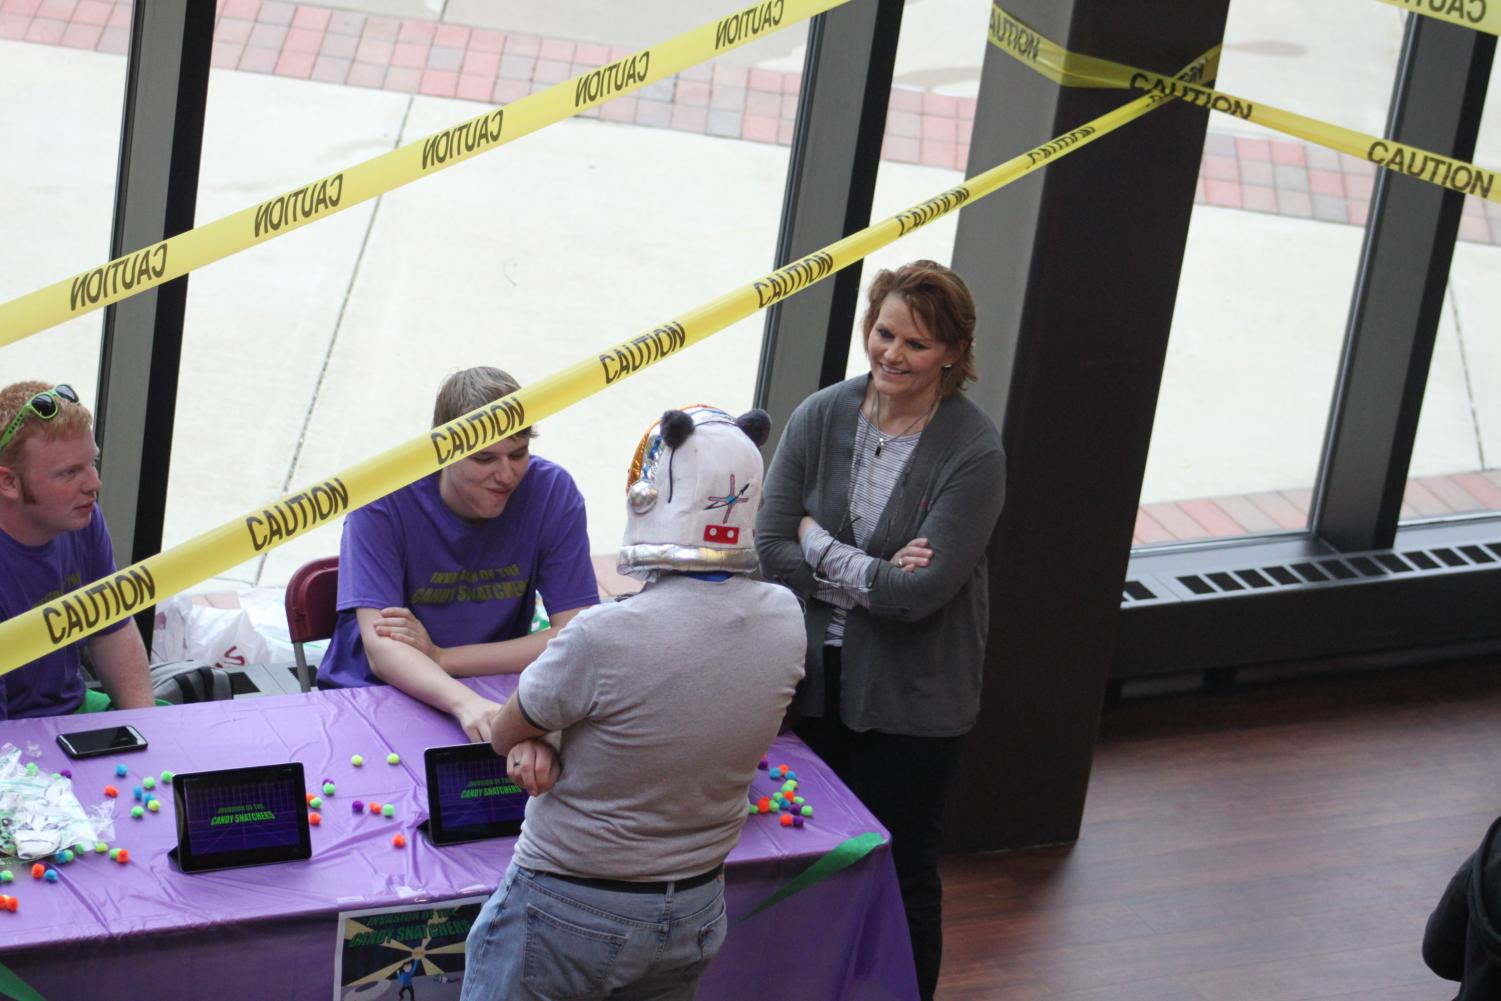 Hyler Pence and Brinton Johnson sit at the table and show off a game they created during  the EndGame Expo, previously called the Video Game Design Tournament, in the A.Lincoln Commons on Thursday, April 25, 2019. The expo hosted teams and the video games they have created in Video Game Design I and Video Game Design II classes.